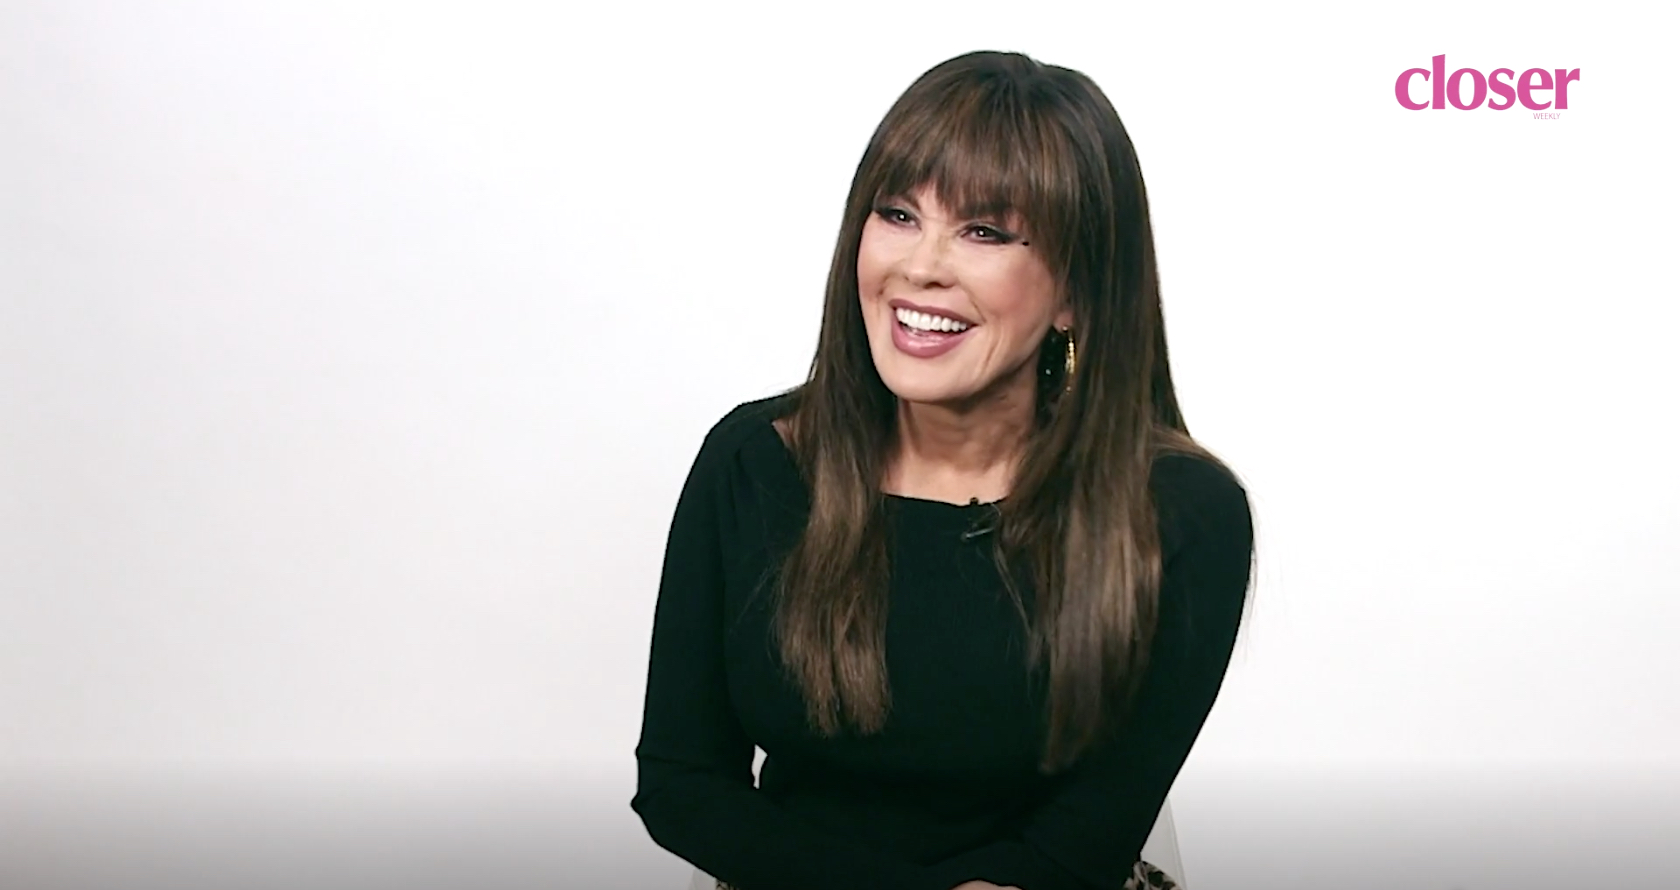 ExclusiveMarie Osmond Talks Her 'Blessed' Career and Why She Won't Retire: I 'Will Work Until I'm Dead'